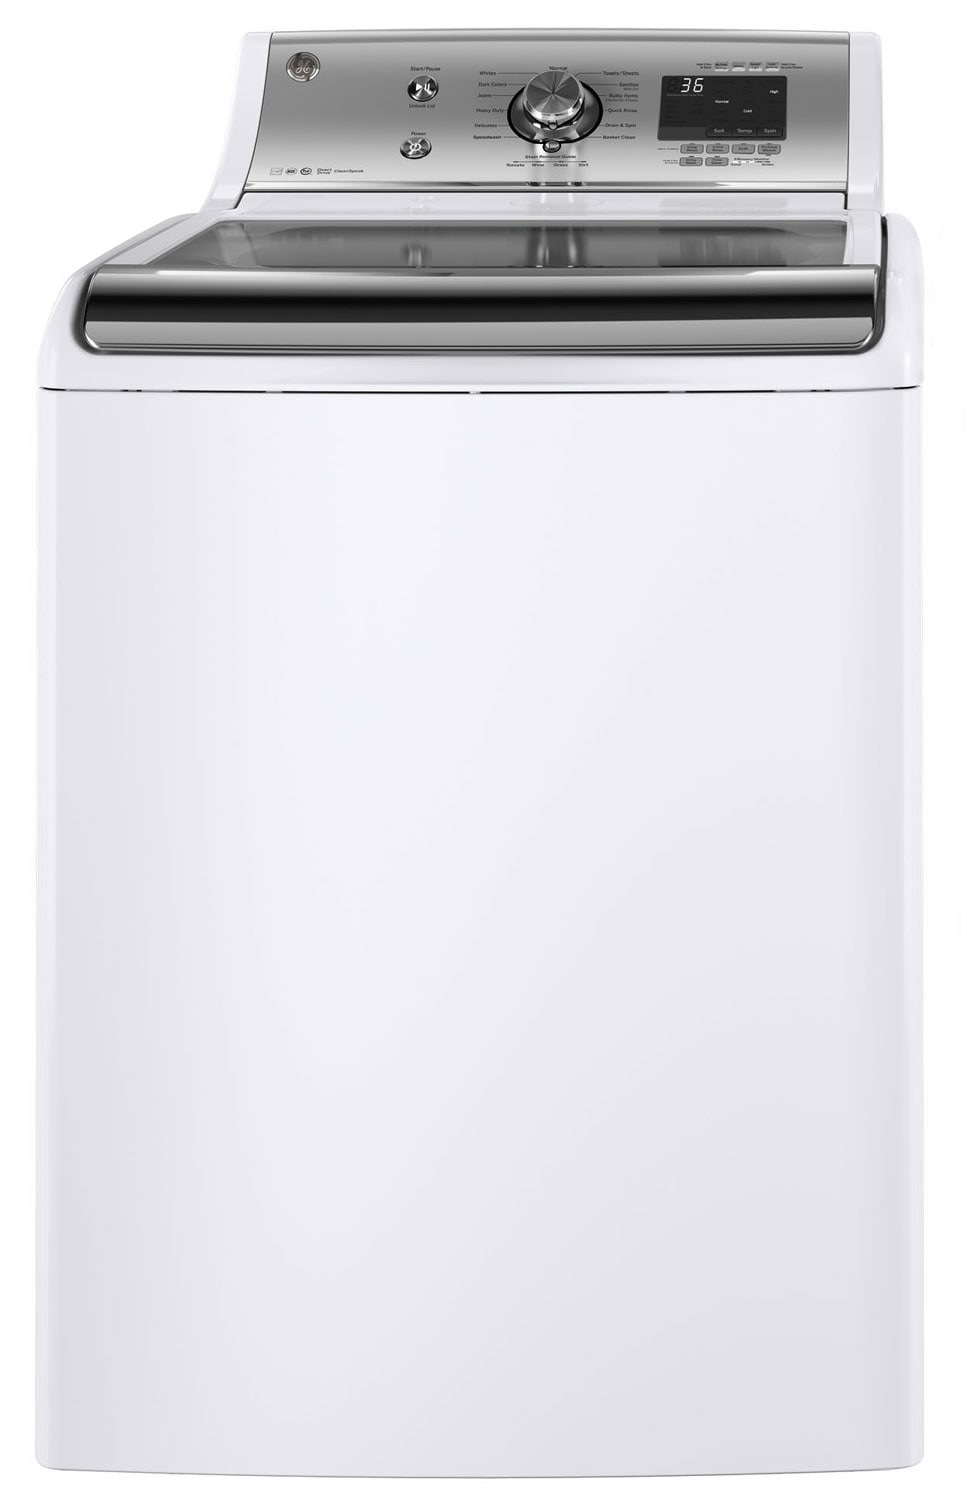 GE 5.9 Cu. Ft. Top-Load Washer – GTW810SSJWS